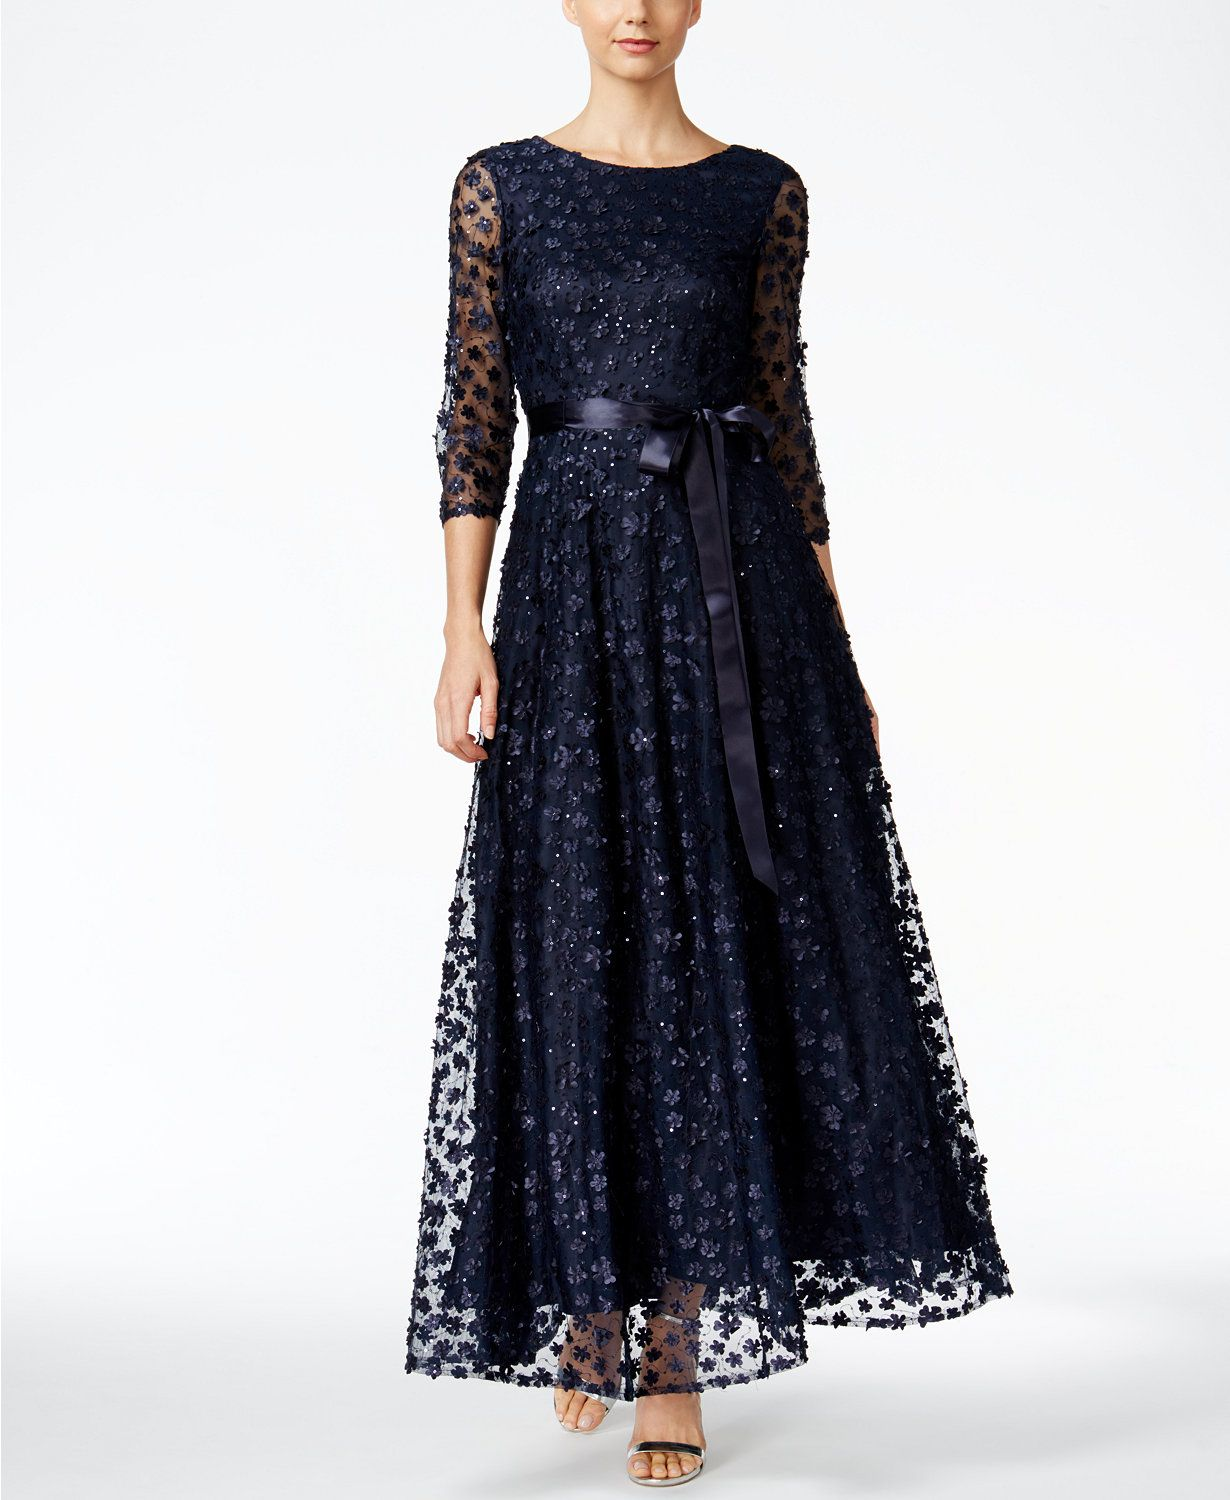 Tahari Asl Floral Lace A Line Gown Macys Com A Line Gown Lace Dress With Sleeves White Evening Gowns [ 1500 x 1230 Pixel ]